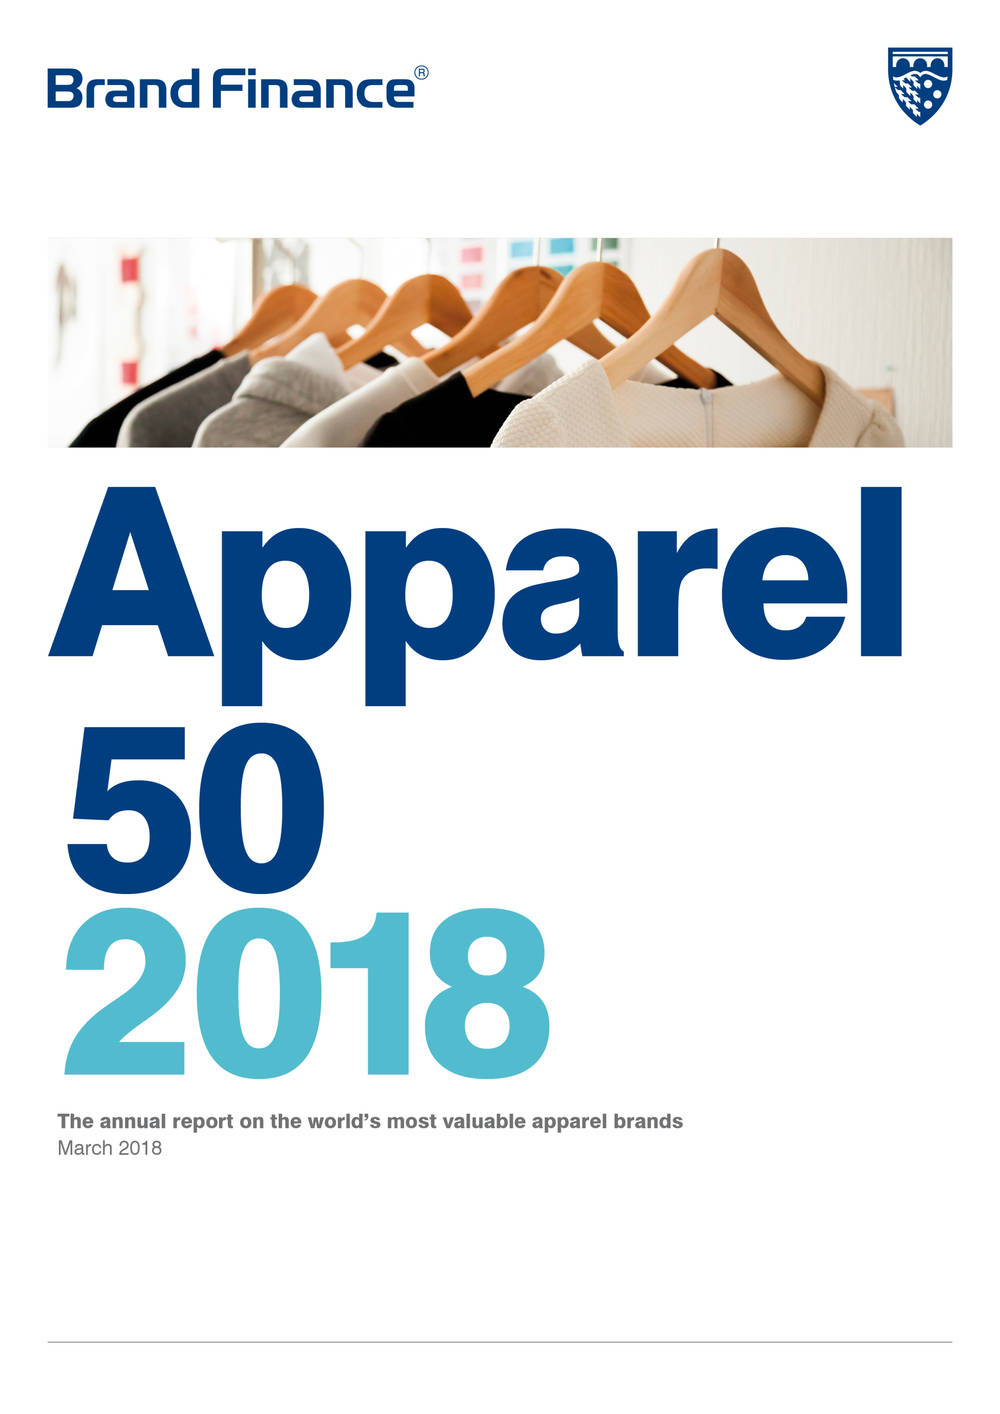 Brand Finance Apparel 50 2018